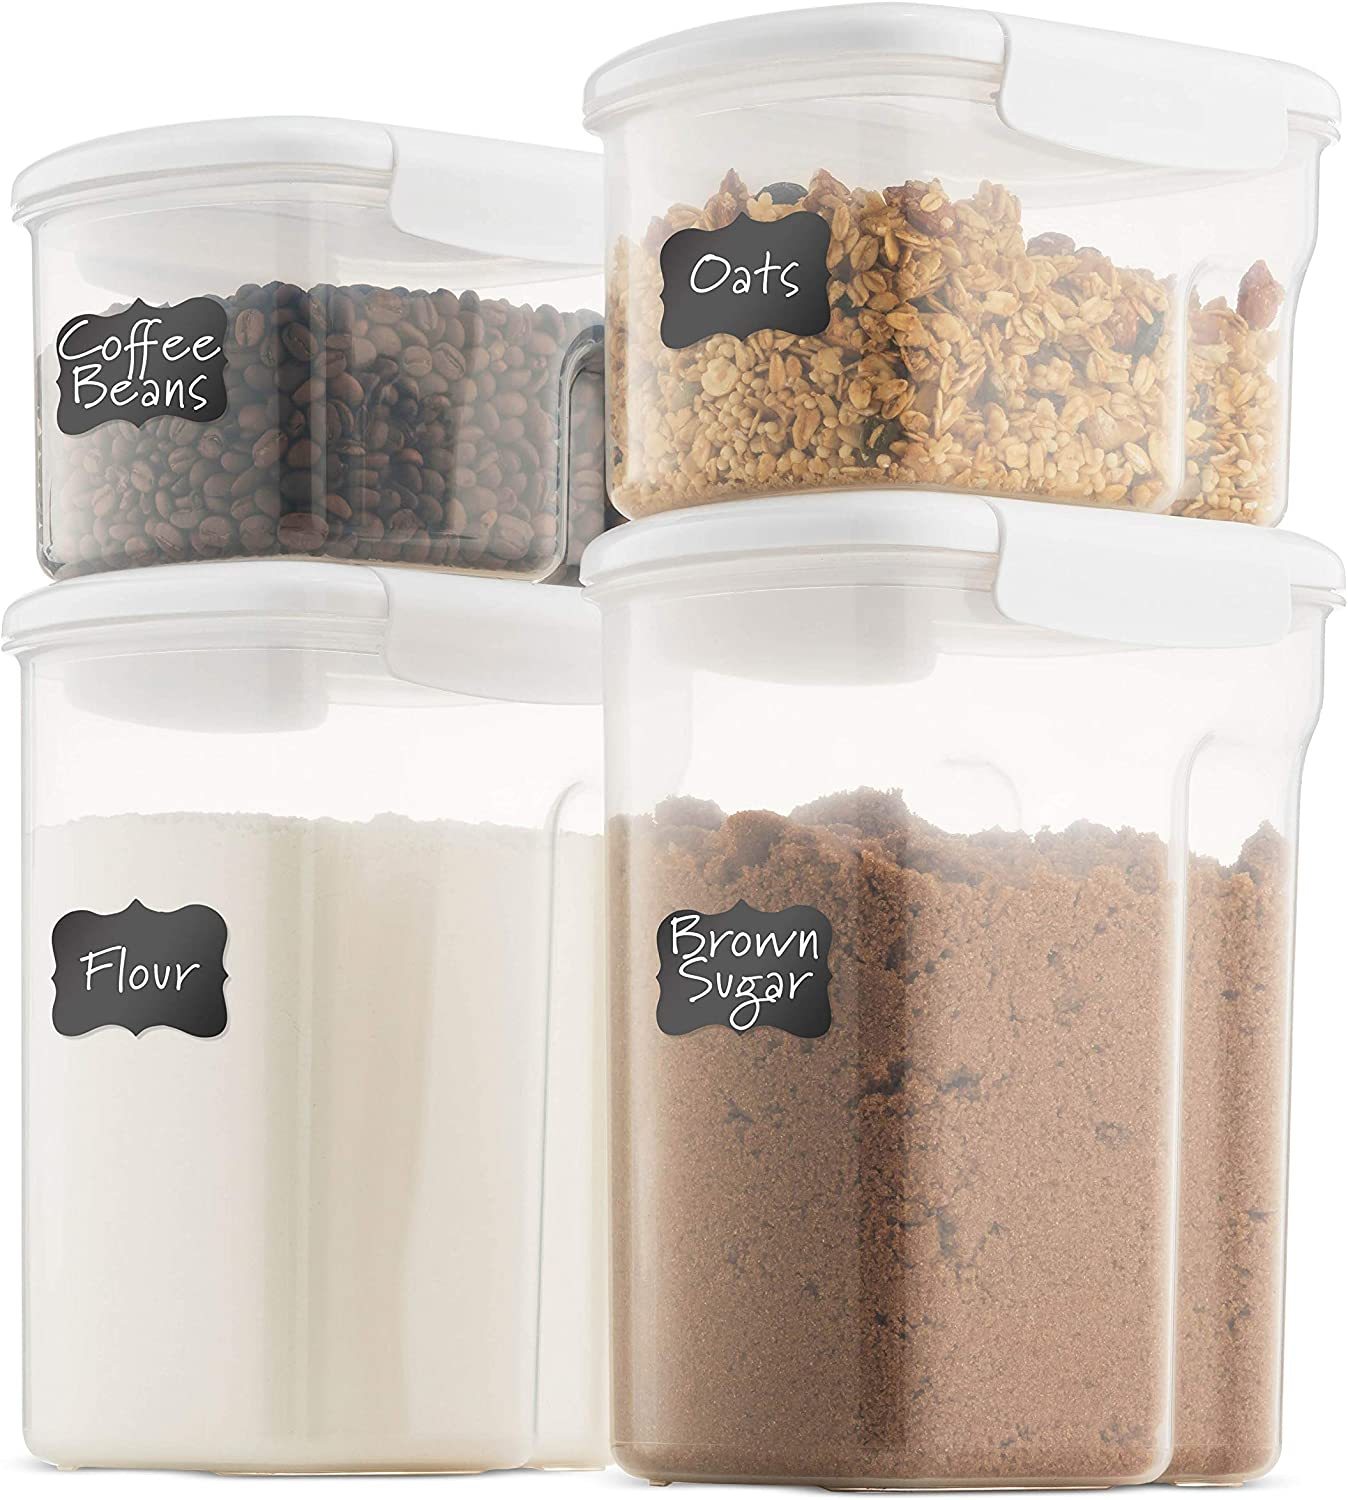 Airtight Food Storage Containers With Lids [4 Piece] BPA Free & 100% Leak Proof Food Containers Set - Dry Food Storage Container Set For Cereal, Flour, Sugar, Coffee, Rice, Nuts, Snacks, Pet Food